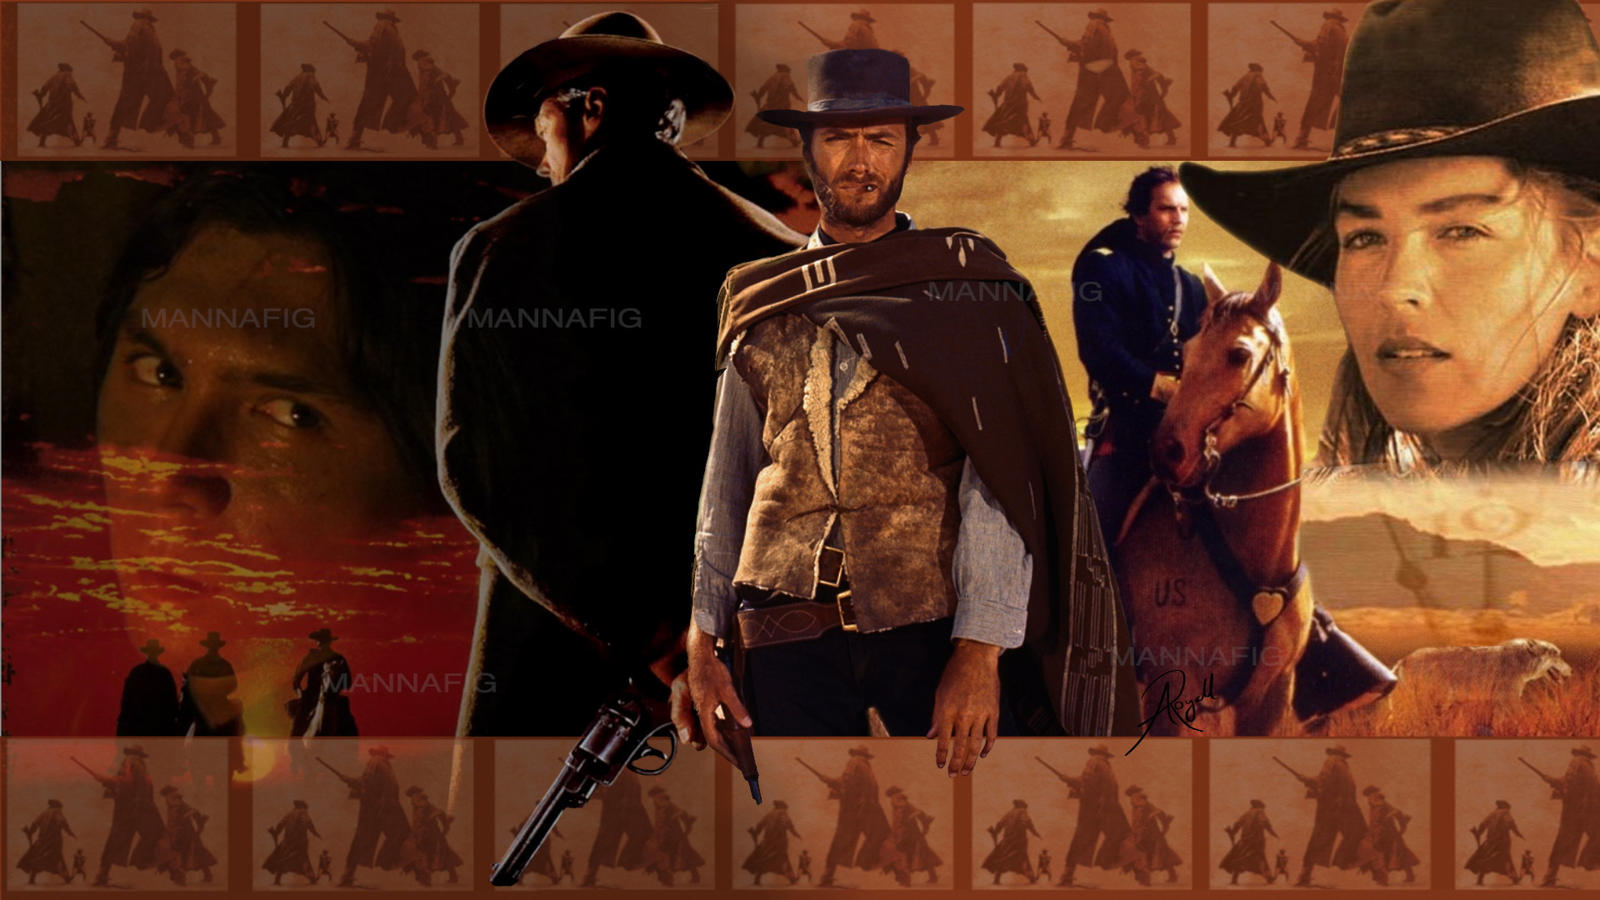 western wallpaper by mannafig on deviantart